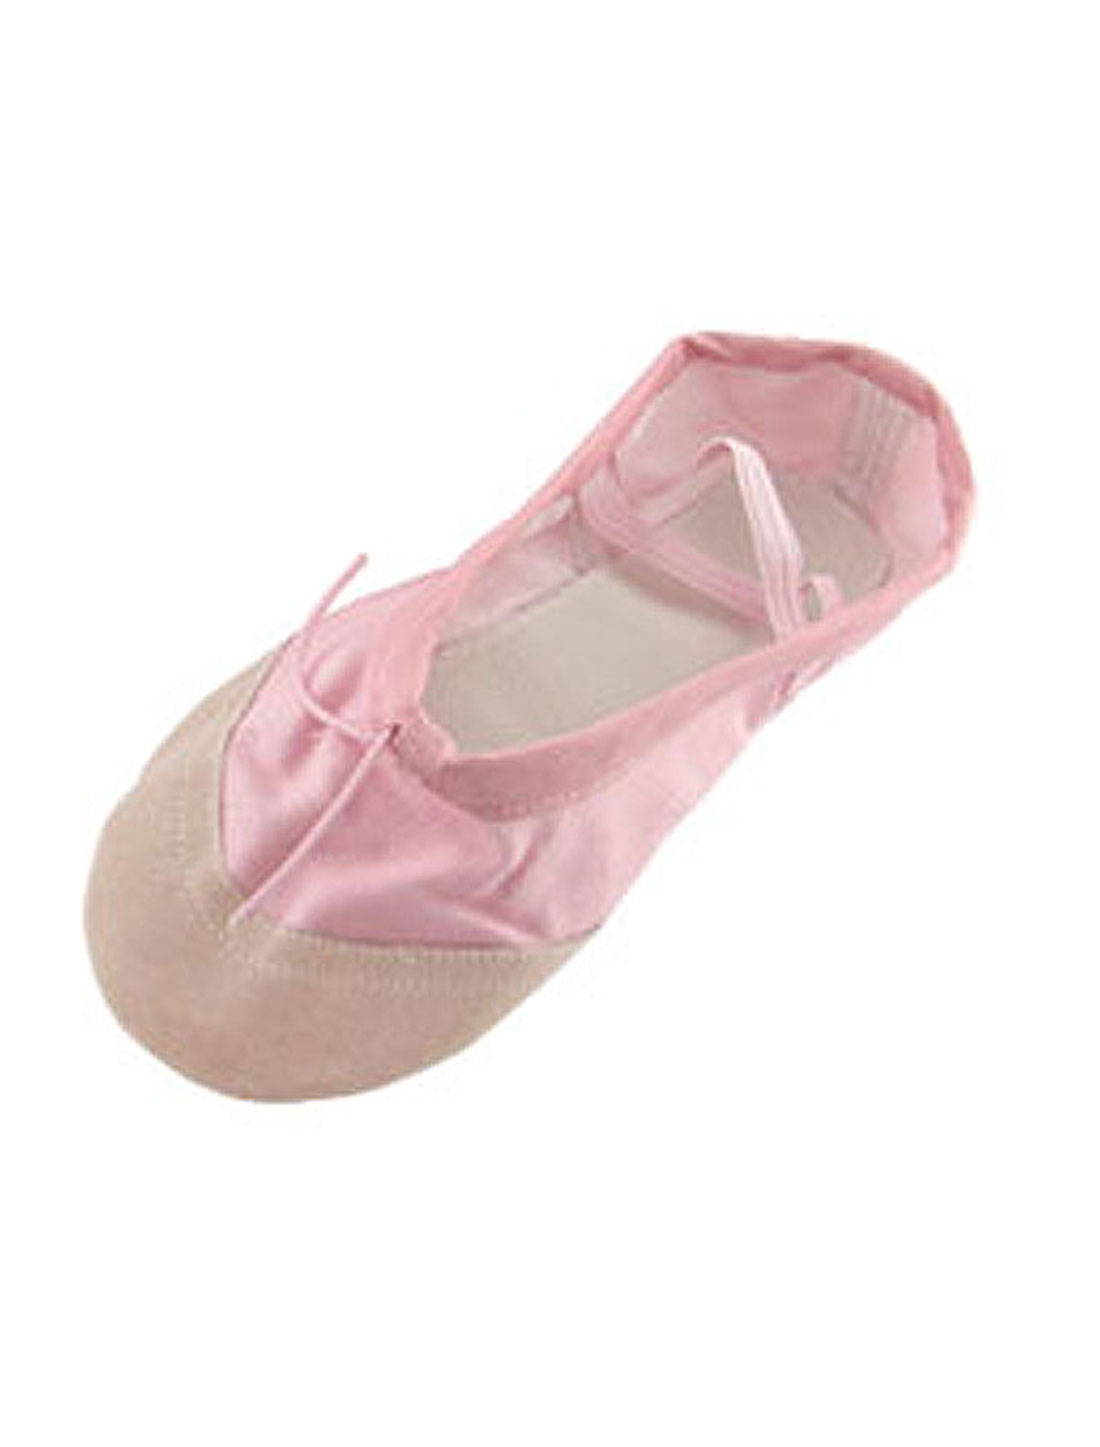 Girls US Size 1 Pink Dancing Ballet Crossover Elastic Bands Flat Dance Shoes